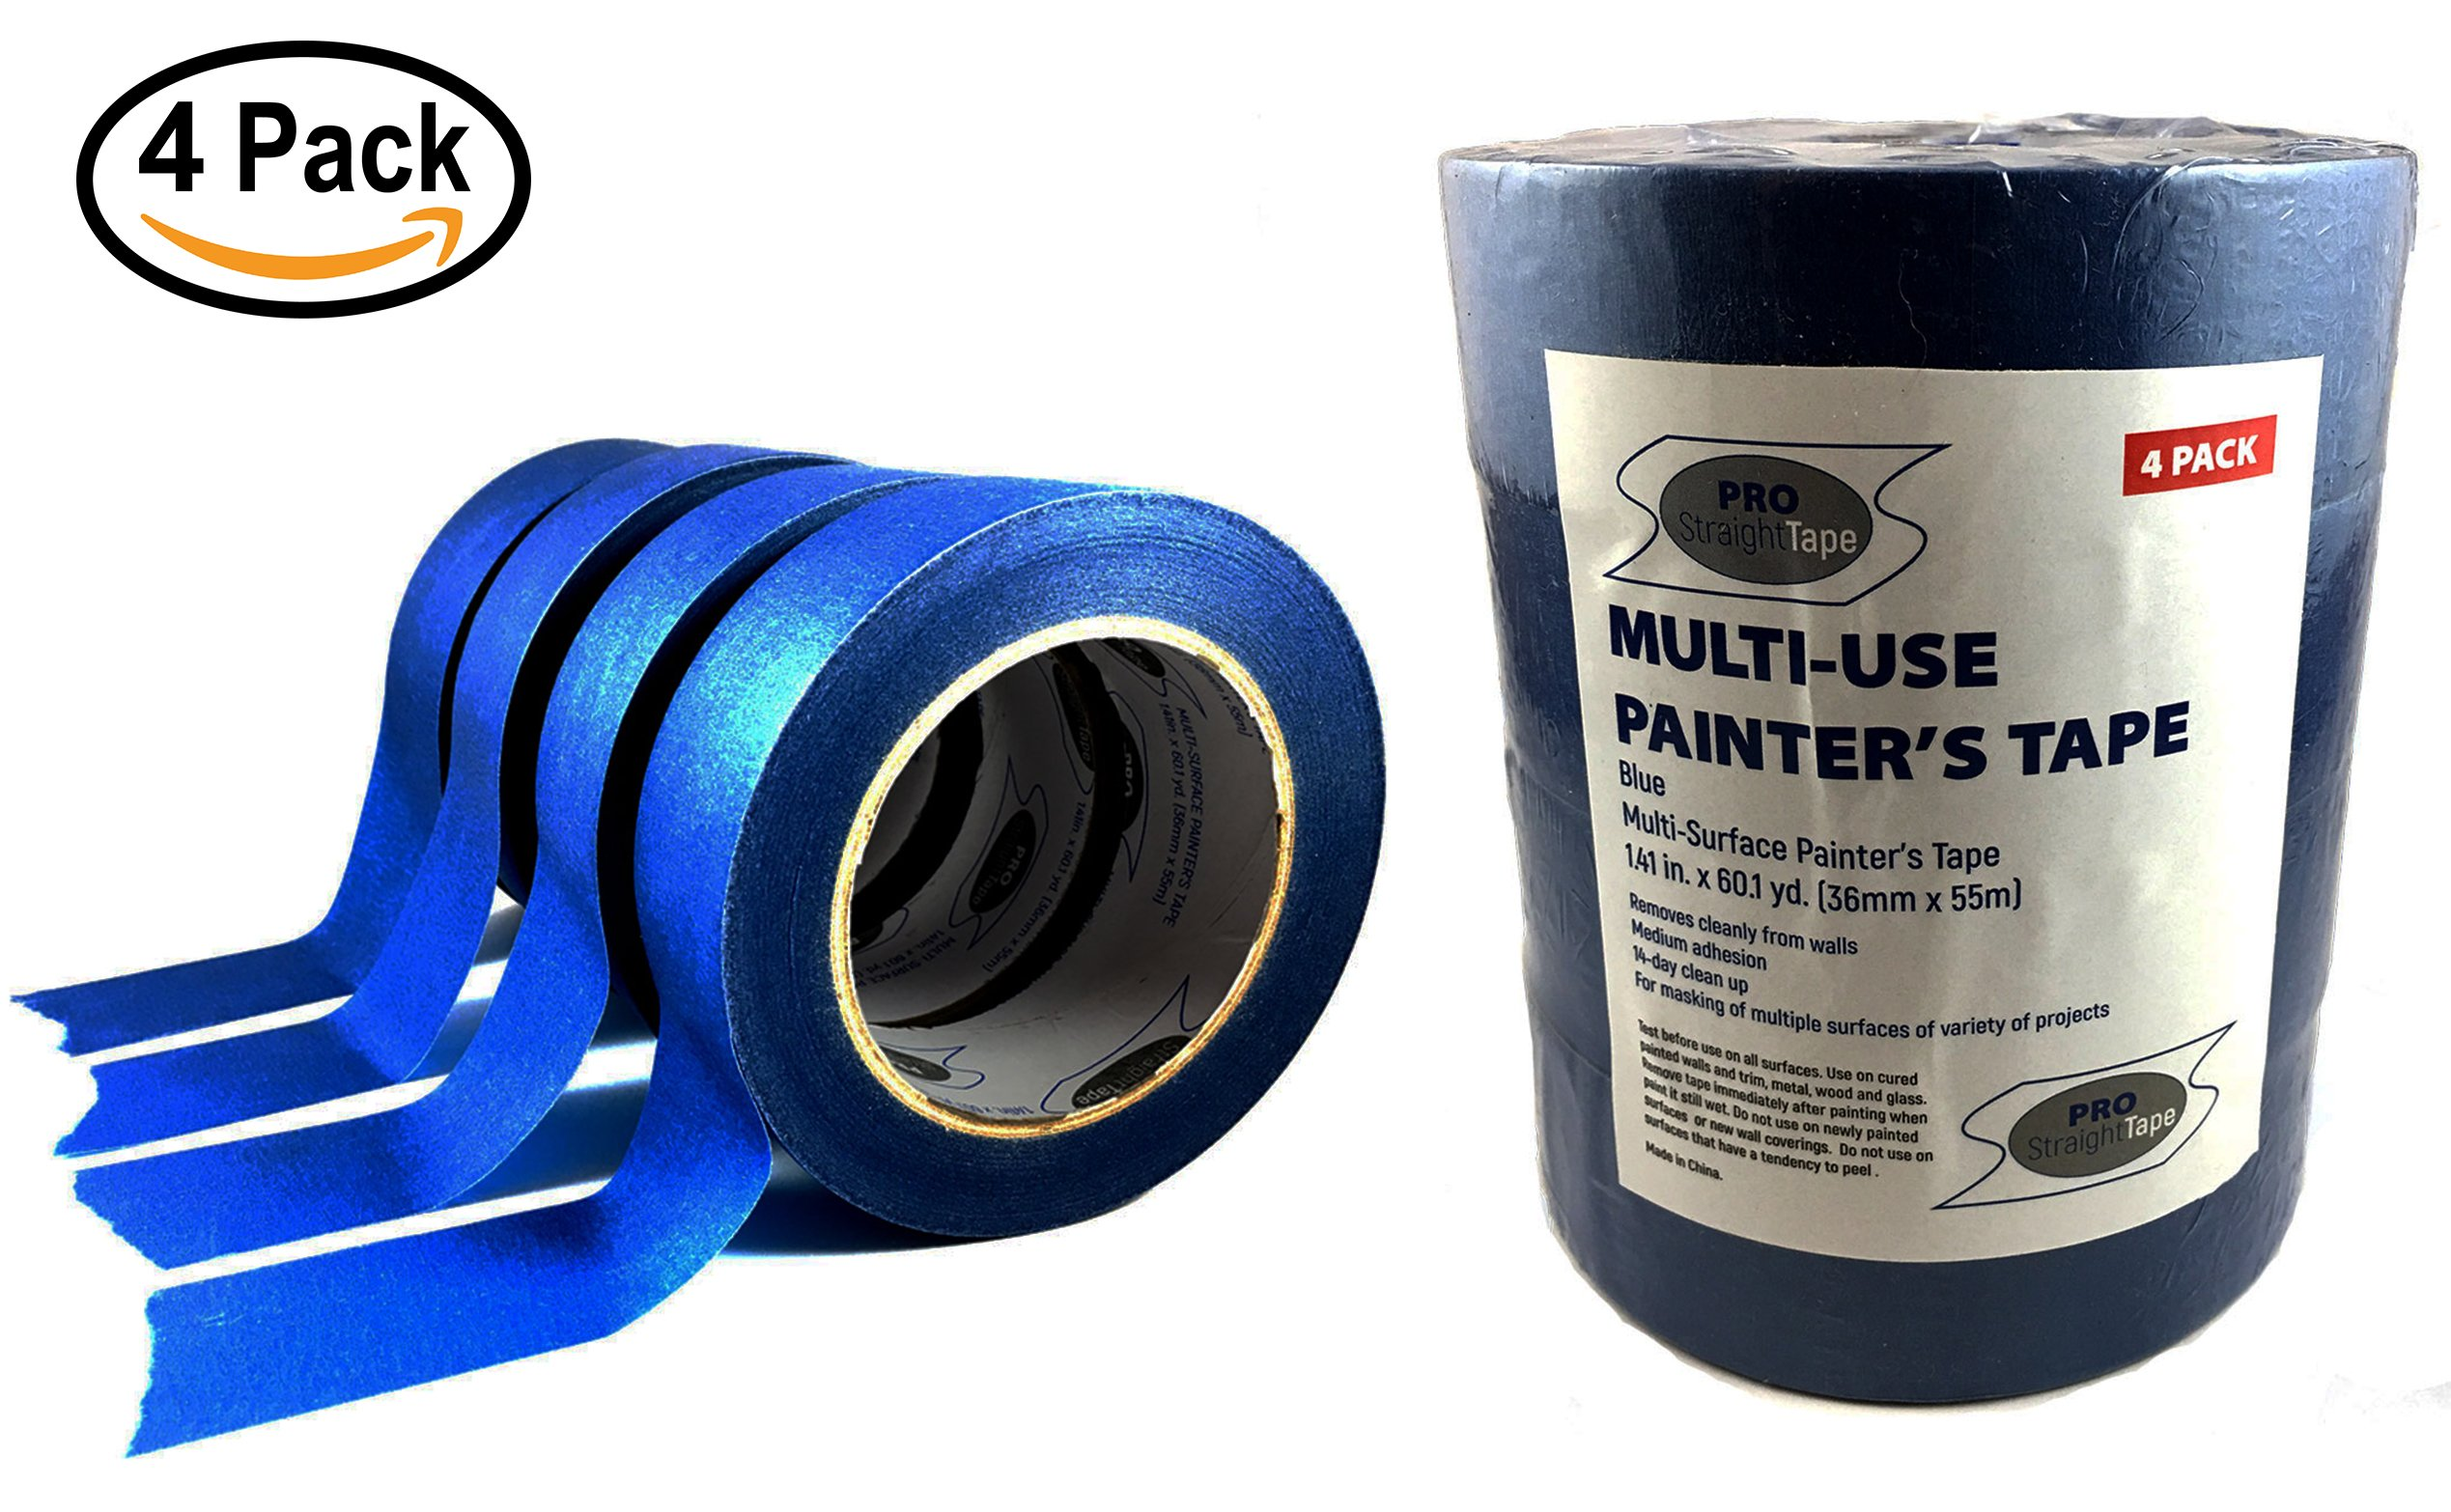 Masking Tape - 4 Rolls of Blue Professional Painters Tape - Multi Purpose, Easy Removal 1.5'' x 180'(1.41'' x 60.1yds) by PRO STRAIGHT TAPE - Perfect for clean masking of trim and various surfaces